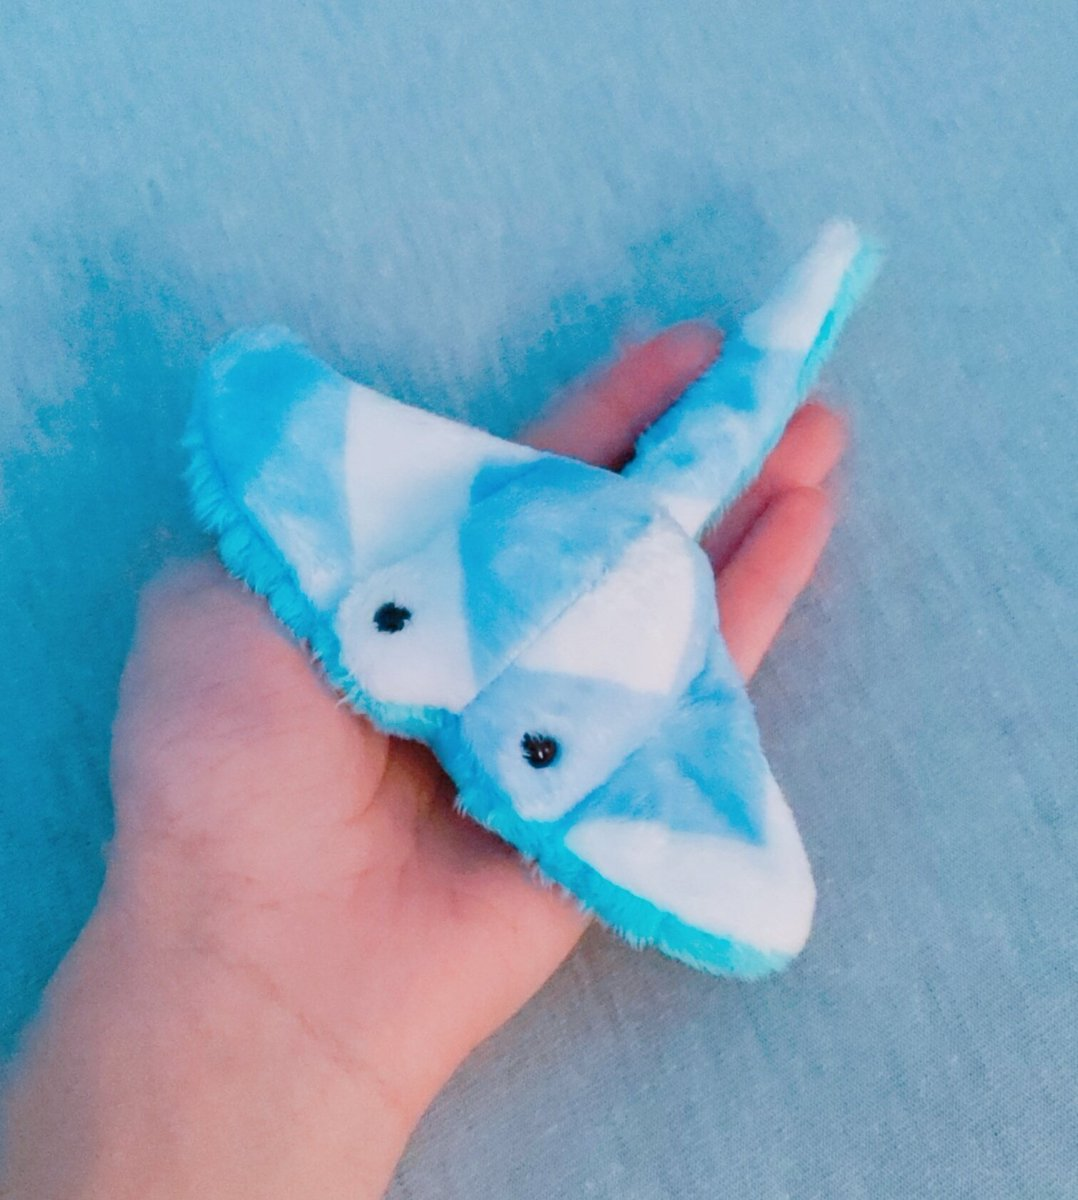 ✨✨GIVEAWAY✨✨ Ive recently reached 1,800 followers and I wanted to show thanks in the one way I can. One winner can win 💕TWO MINI-MANTAS💕 custom made from previous fabric. To enter you must: -Follow Me -Retweet Thats it! Give away ends August 15th!